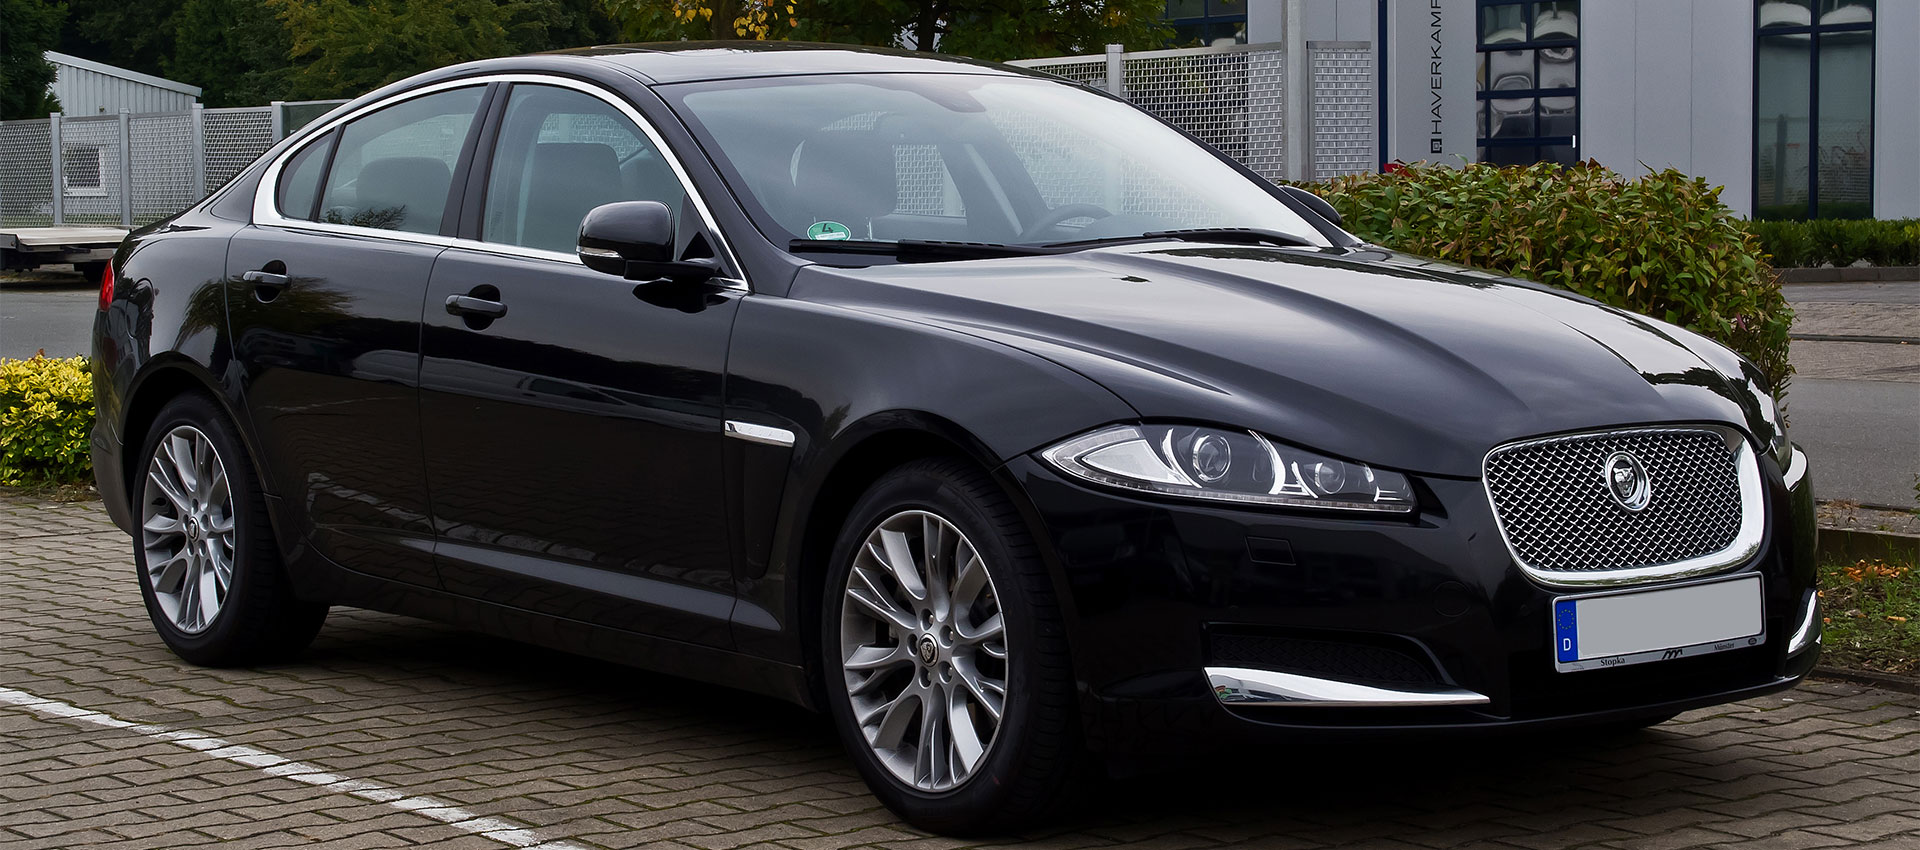 Airport Transfers Macclesfield